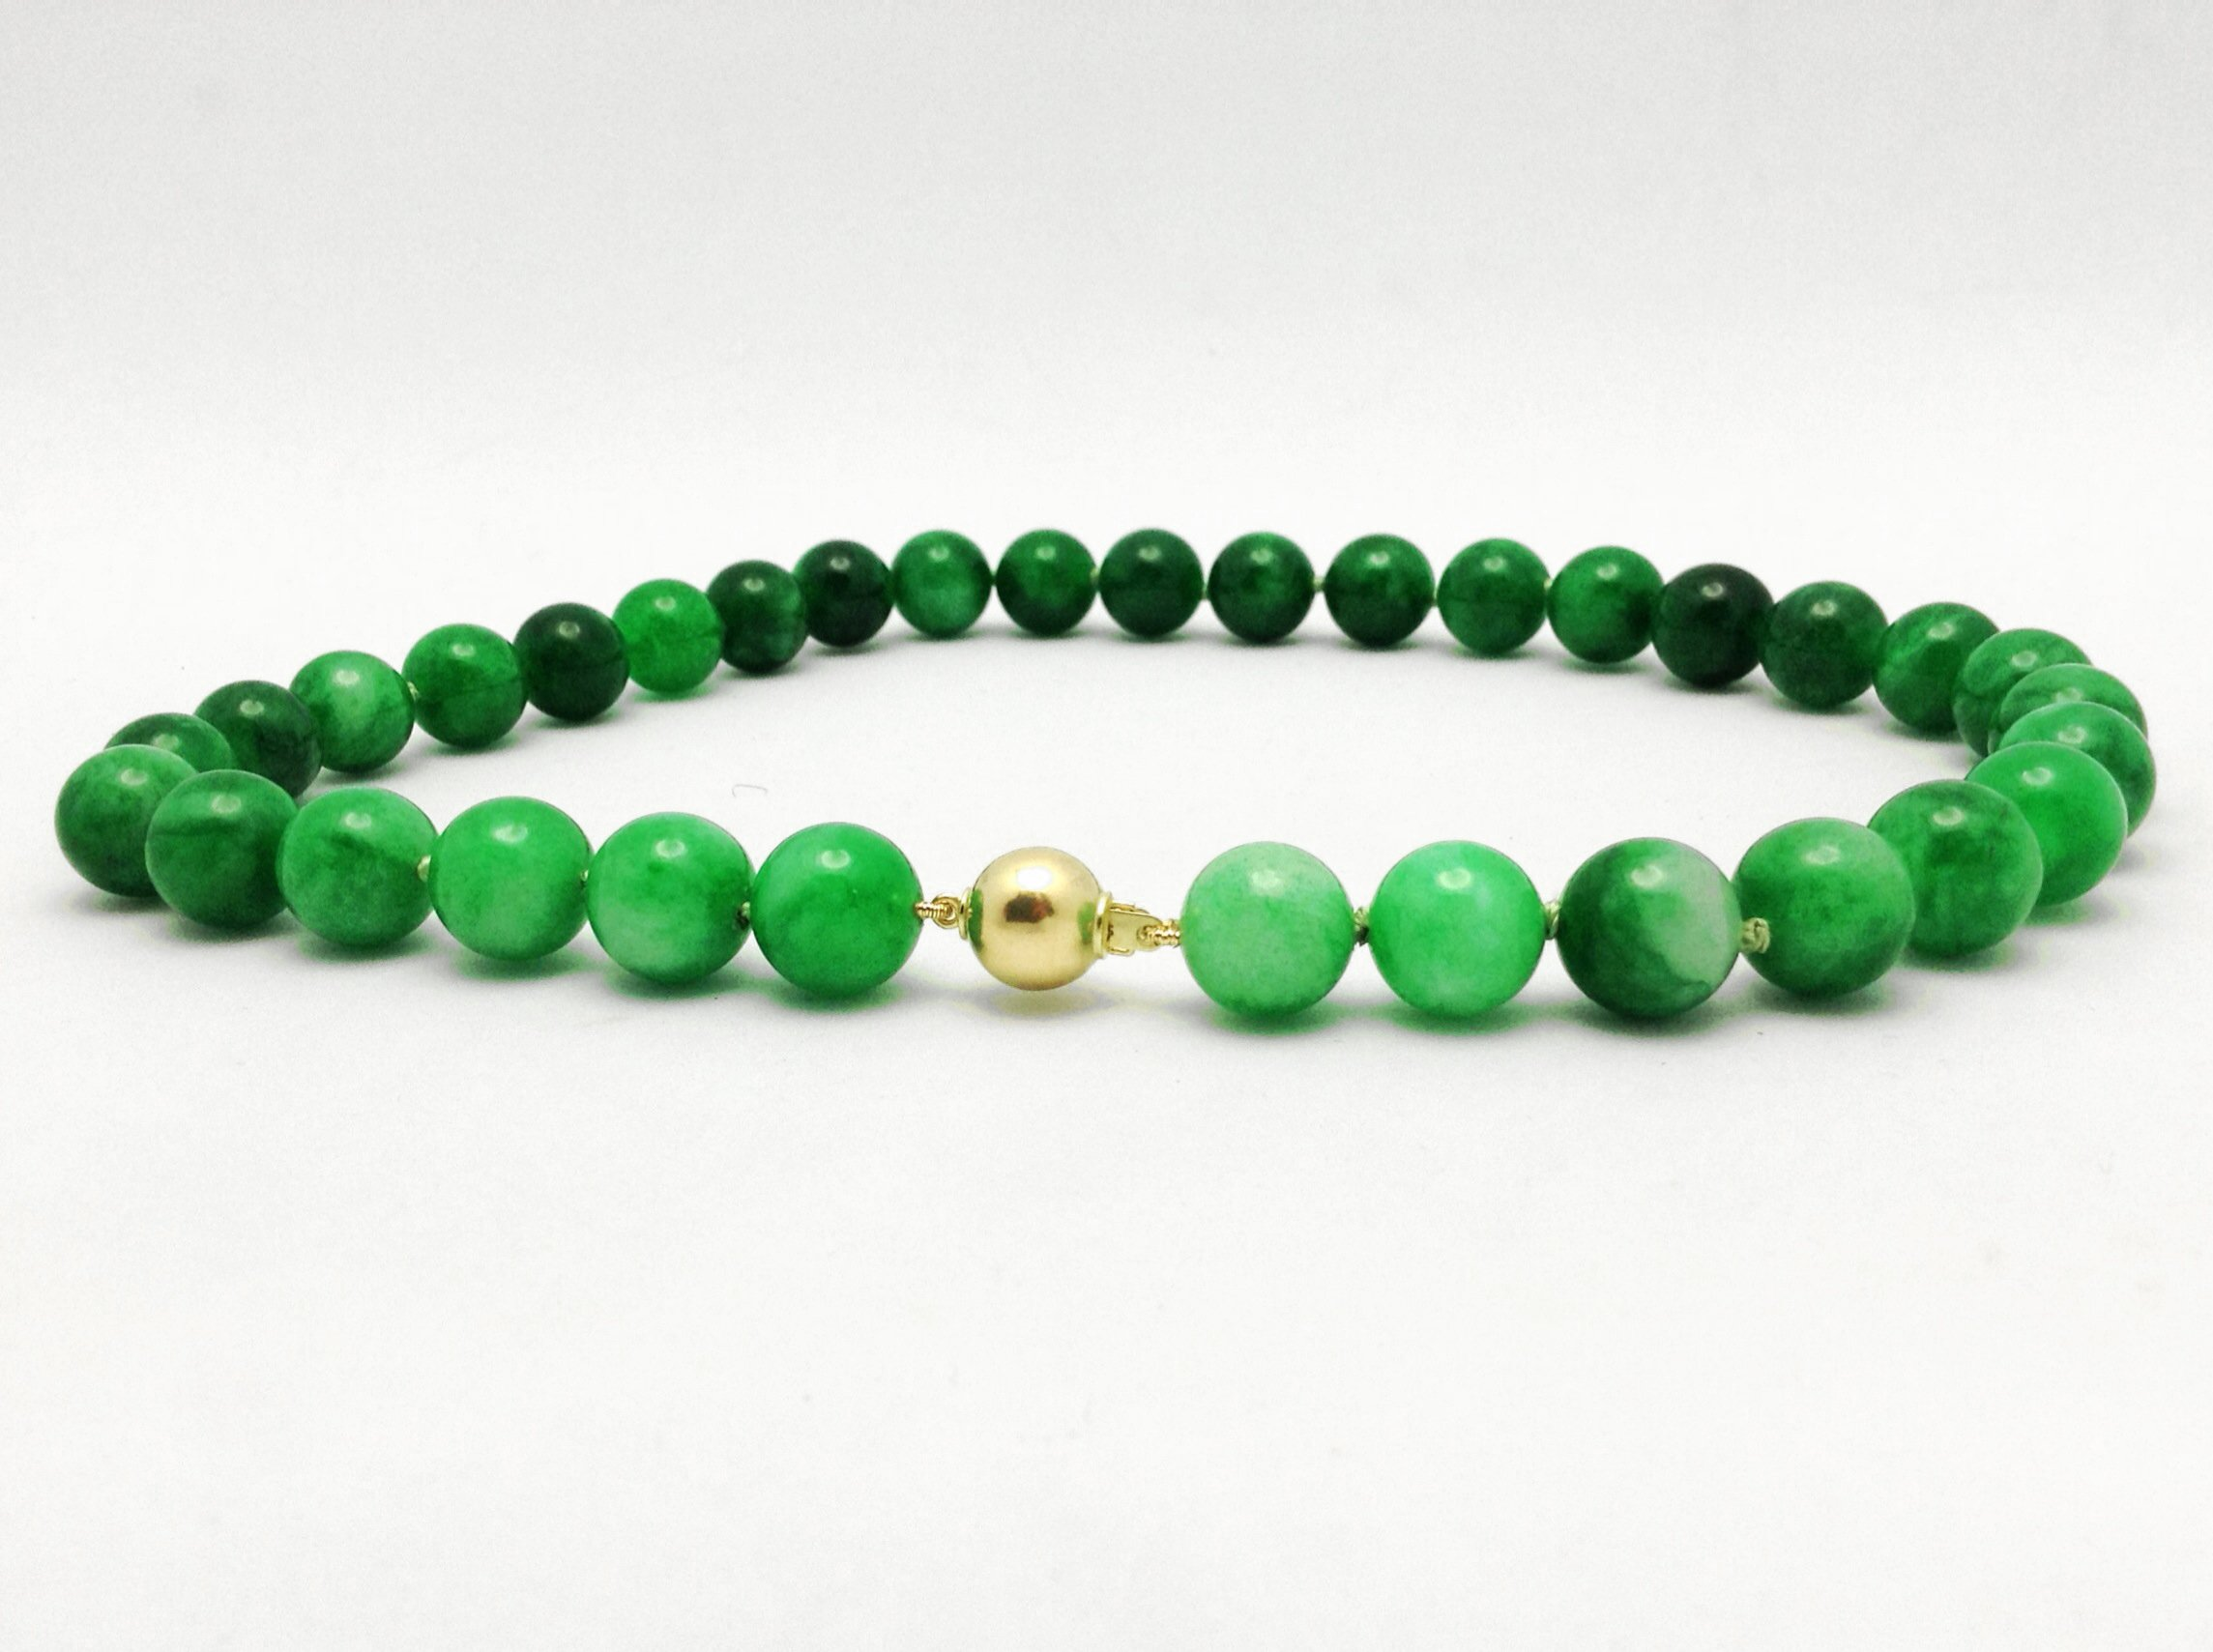 Necklace with Green Beads and Gold Ball Clasp